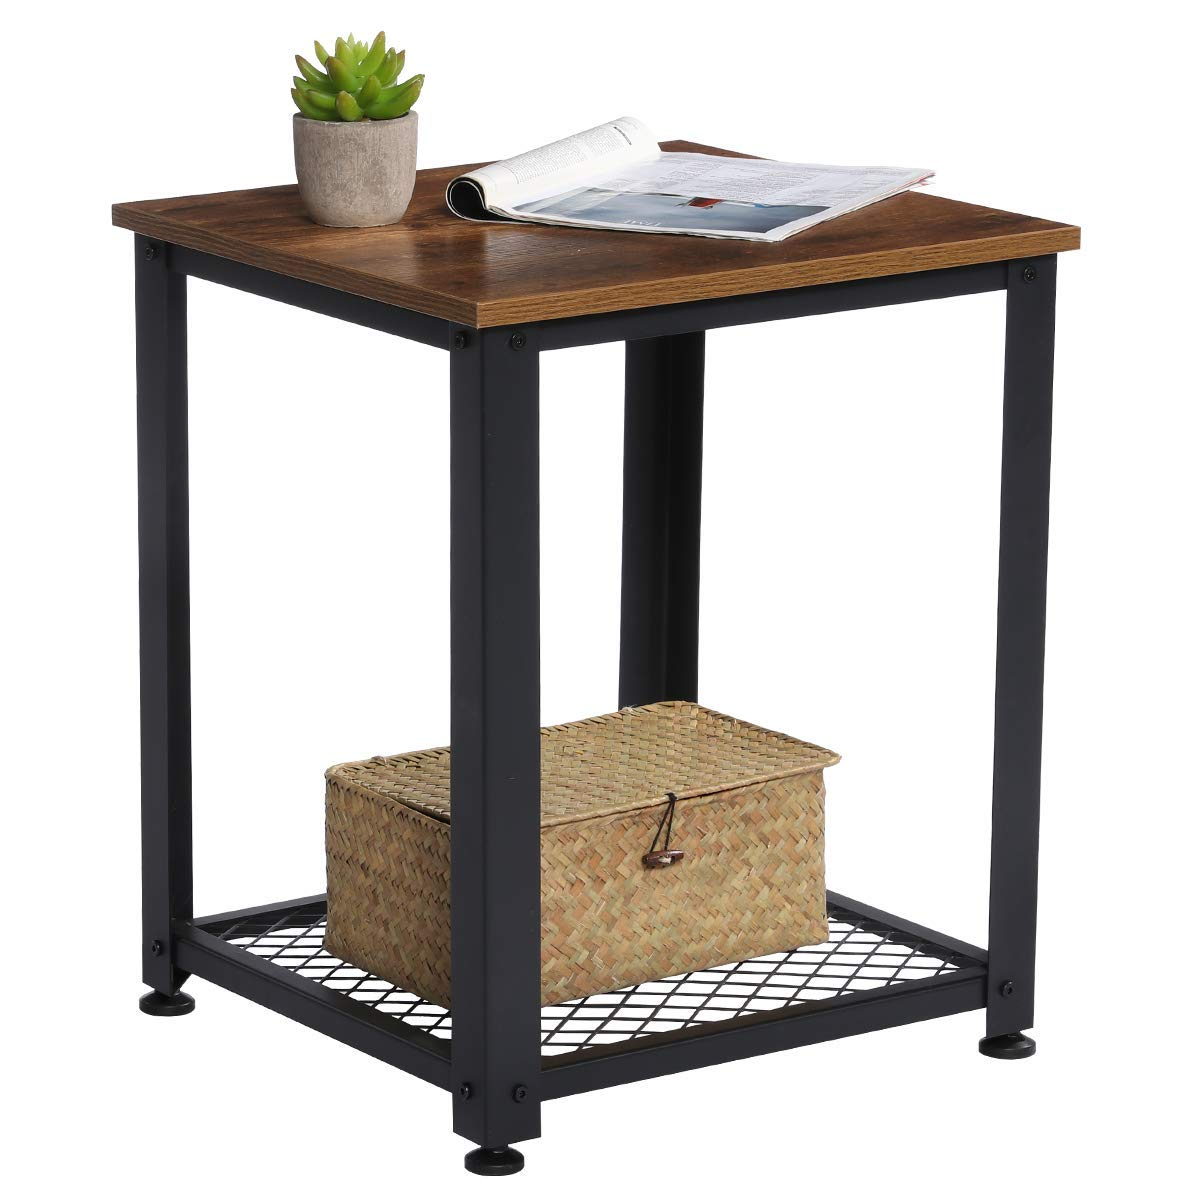 KingSo End Table, 2-Tier Industrial Sofa Side Table with Storage Shelf, Easy Assembly Square Nightstand Wood Look Accent Furniture with Metal Frame for Living Room, Bedroom, Rustic Brown